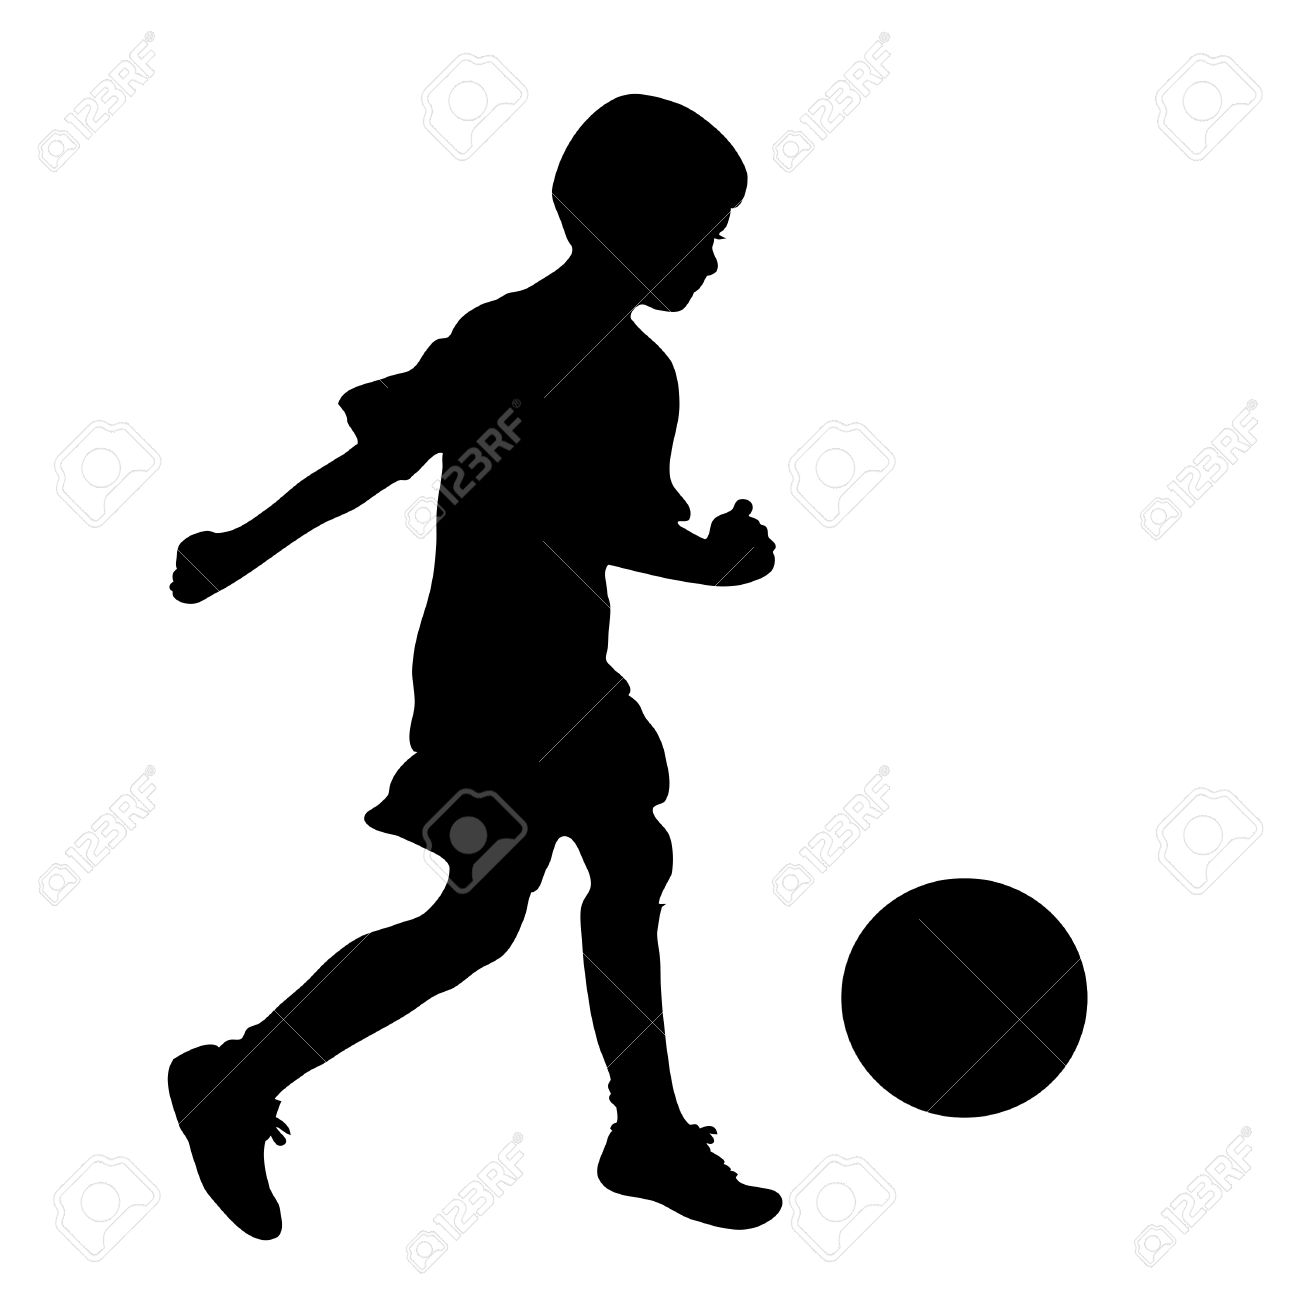 http://previews.123rf.com/images/azimage/azimage1006/azimage100600009/7520976-little-boy-football-player-silhouette-vector-illustration-Stock-Vector.jpg